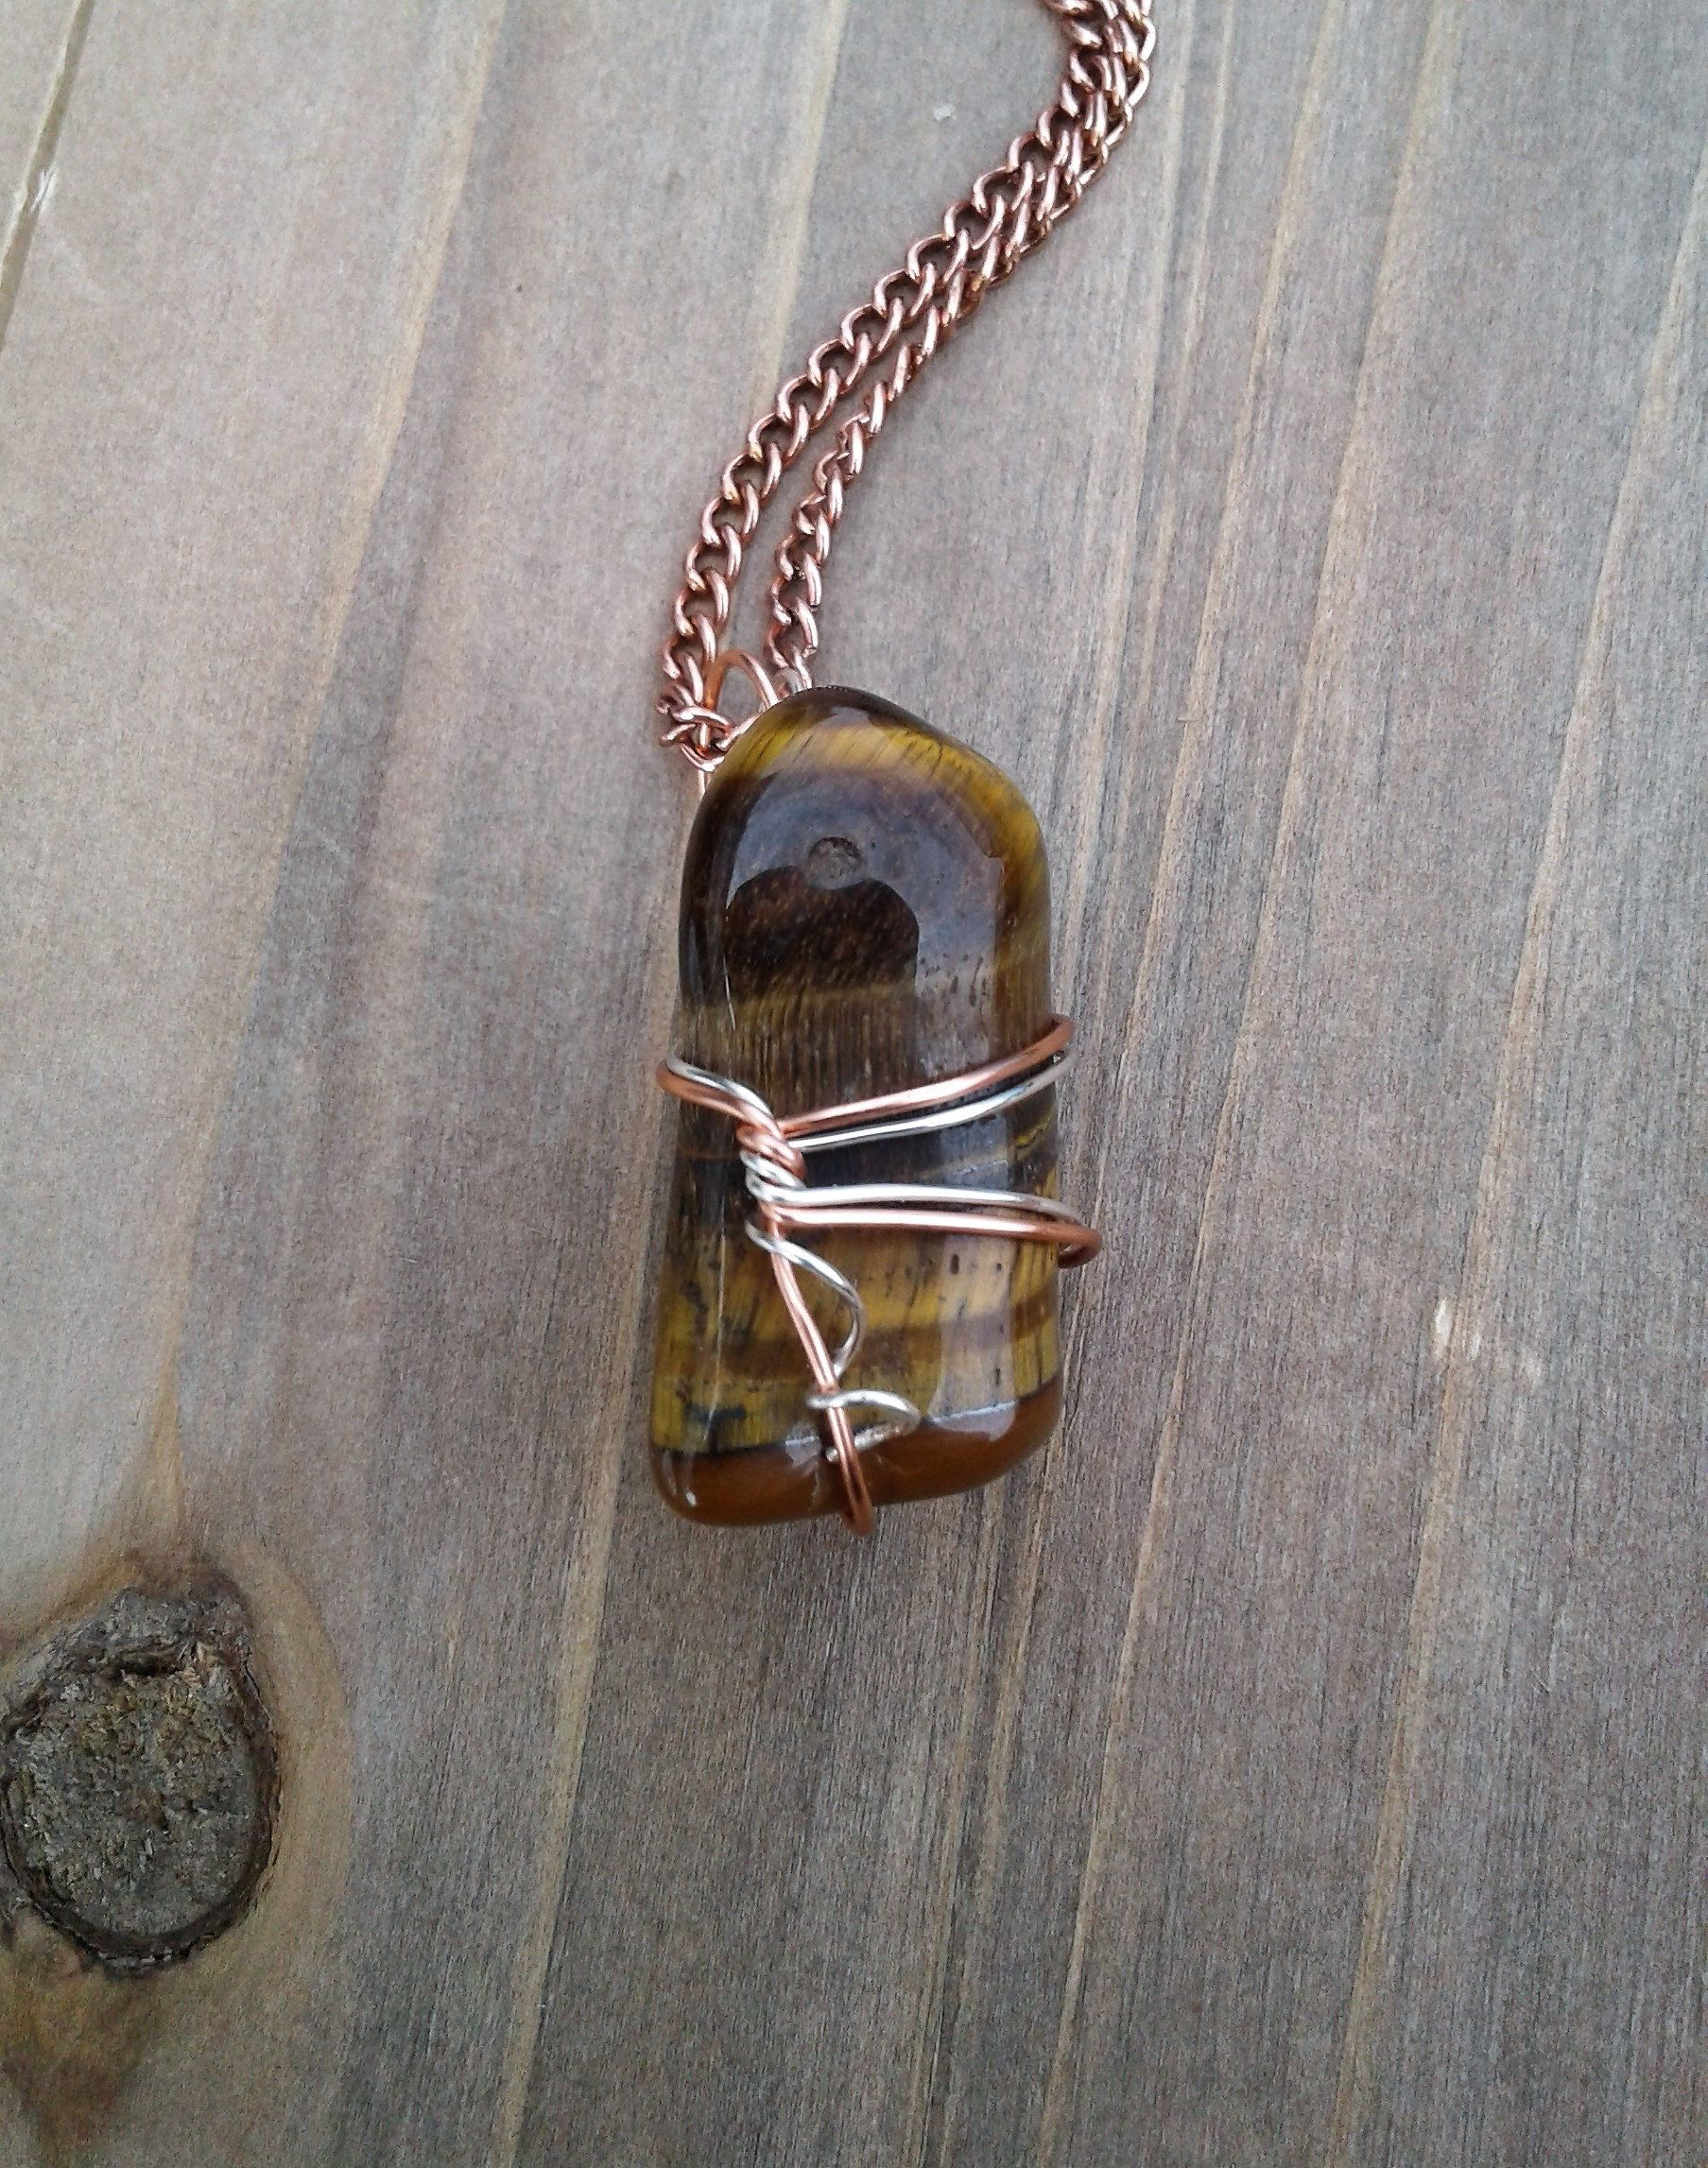 Wire Wrapped Tigers Eye Necklace Healing Jewelry Gift Under 20 Birthday For Mom Massage Therapist